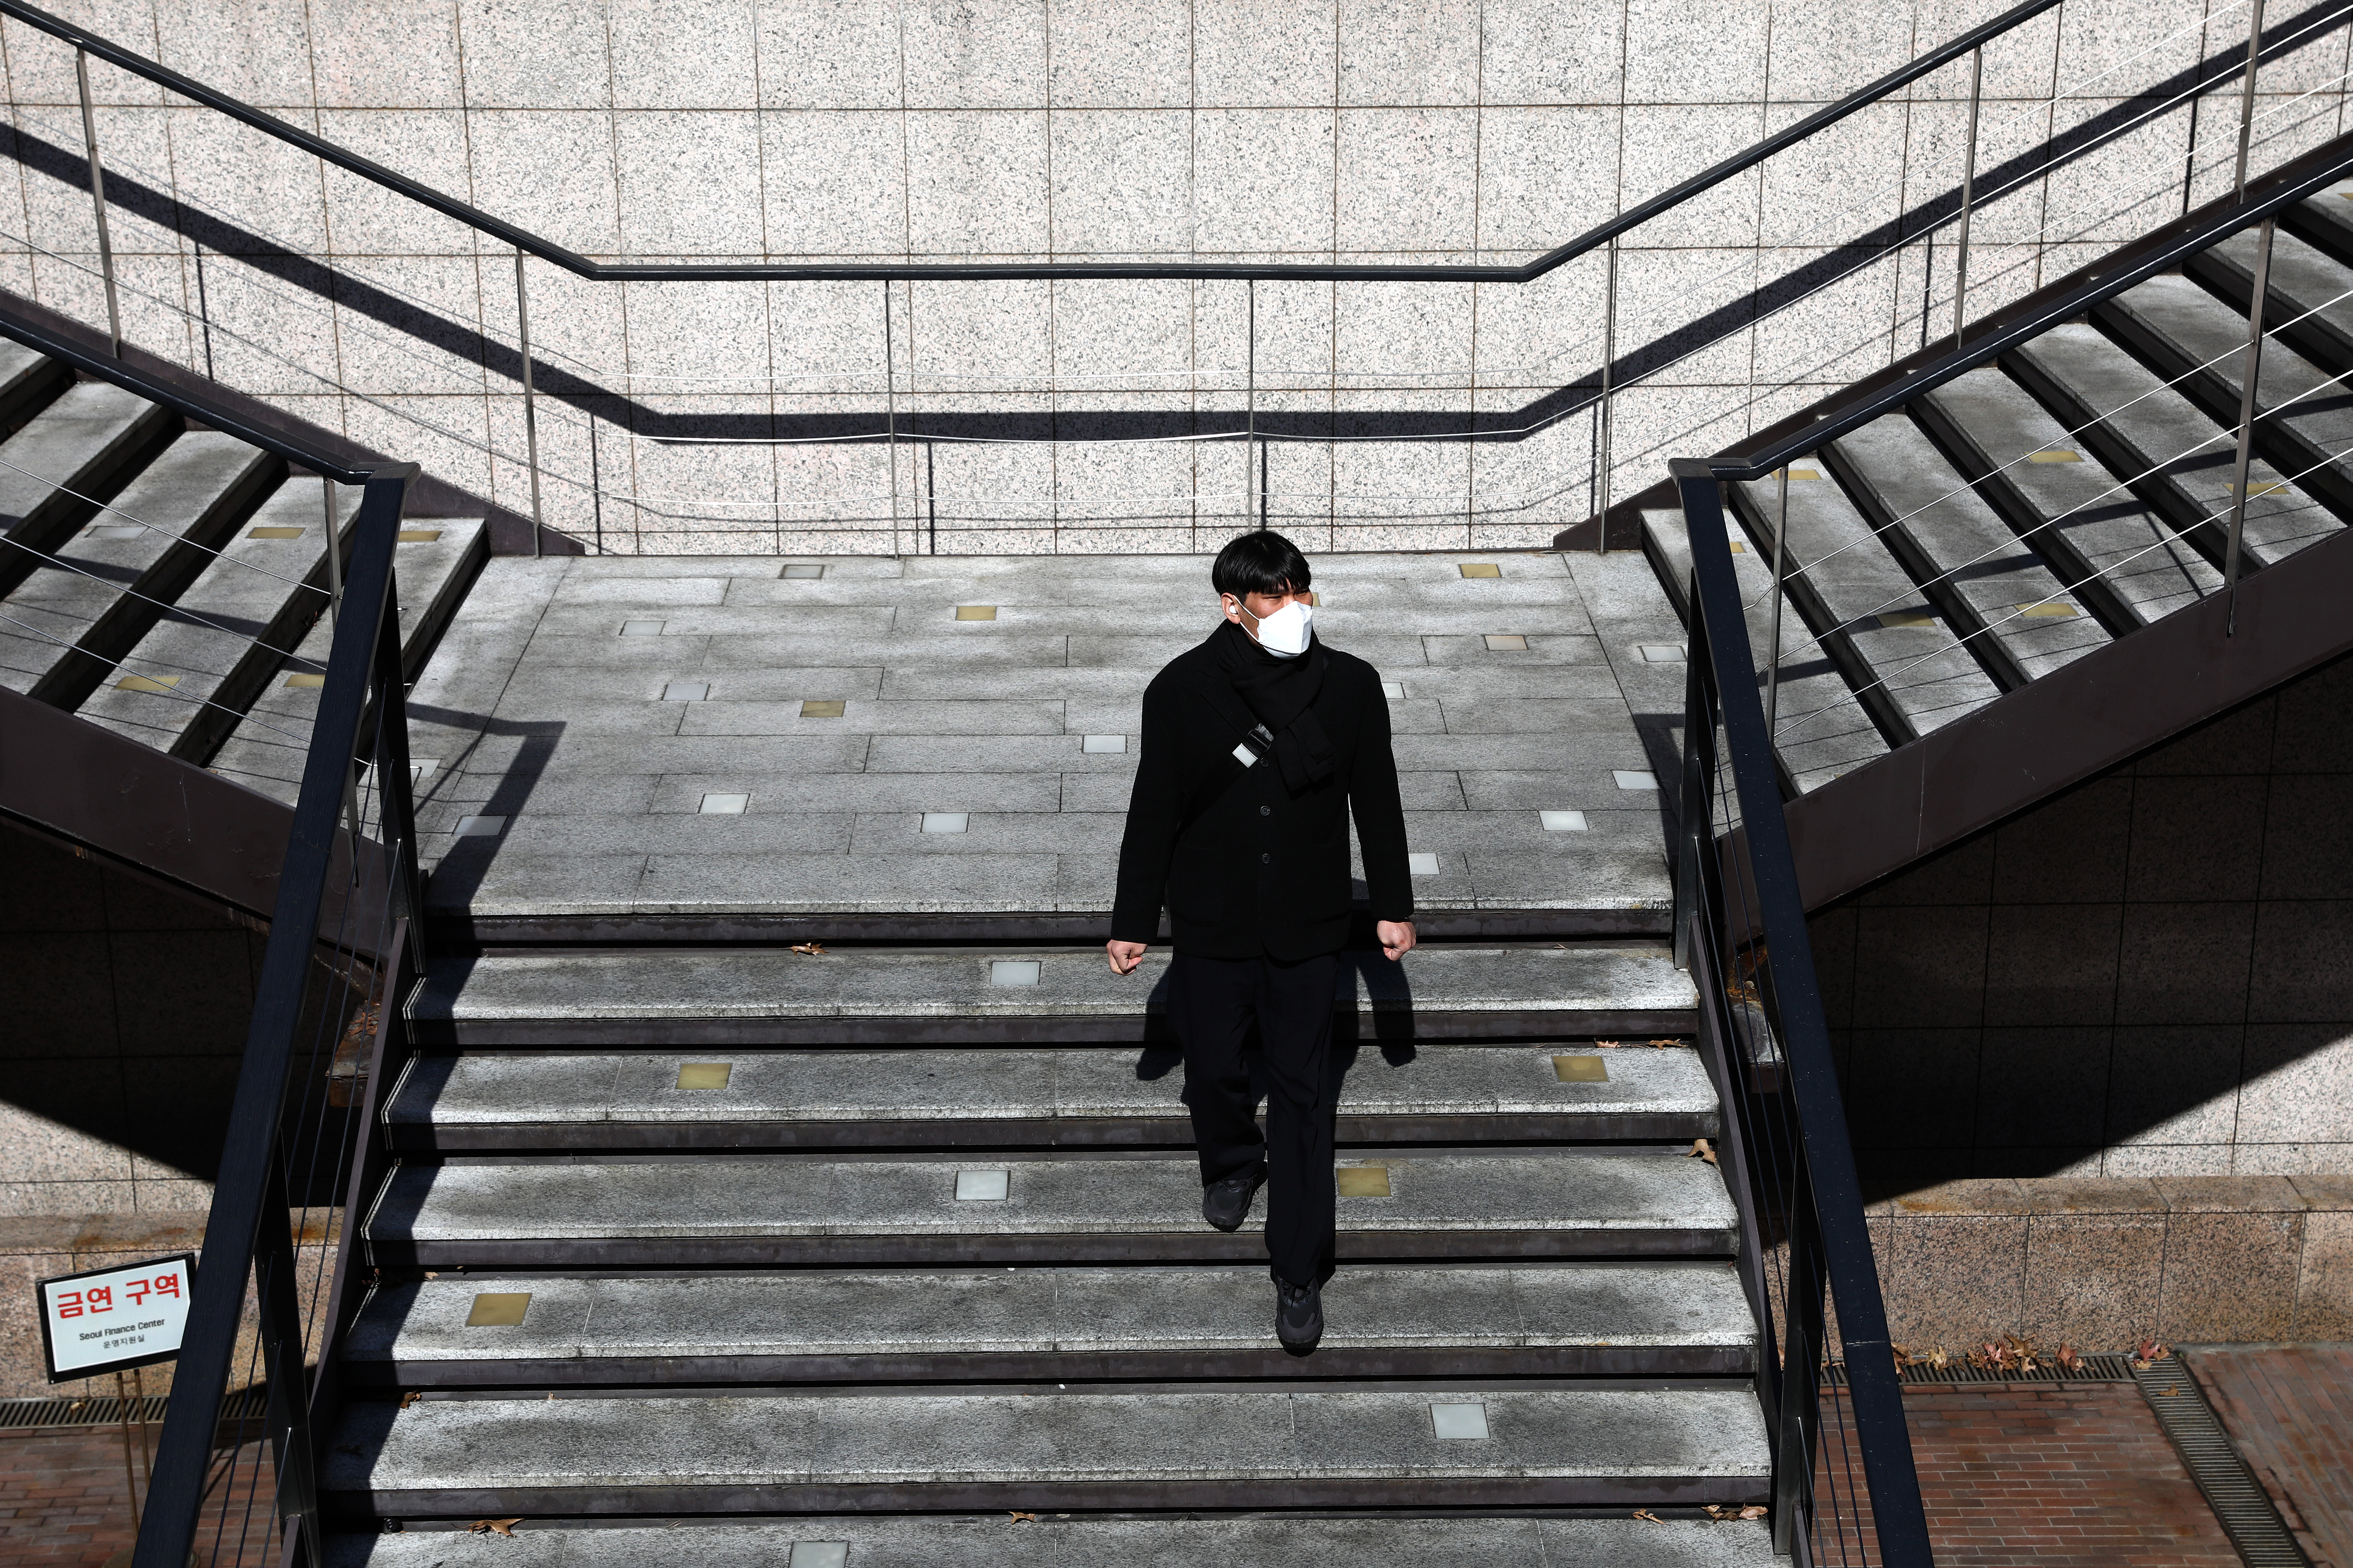 Dressed all in black, a white mask covering his face, a man descends an empty staircase, bathed in sunlight.